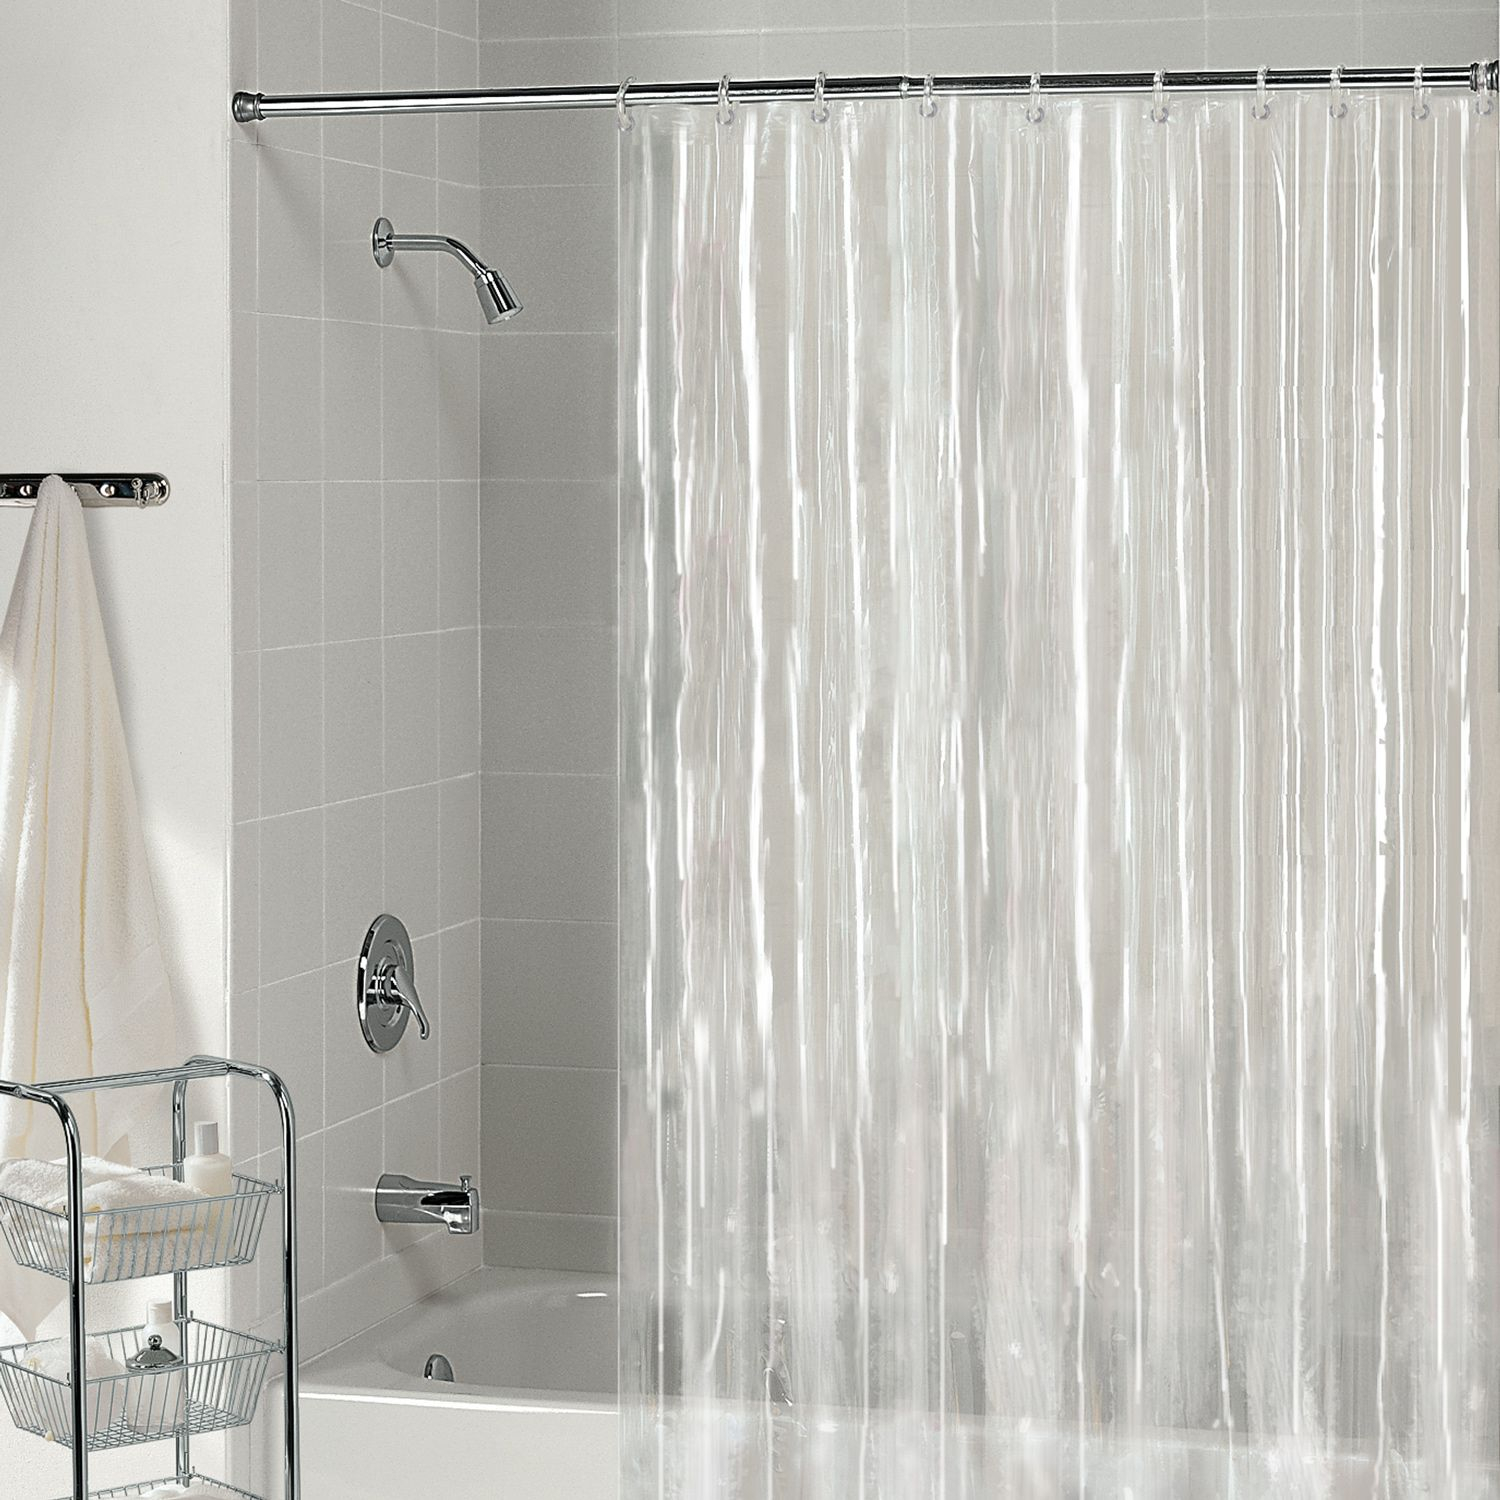 Best Material For Shower Curtain Liner